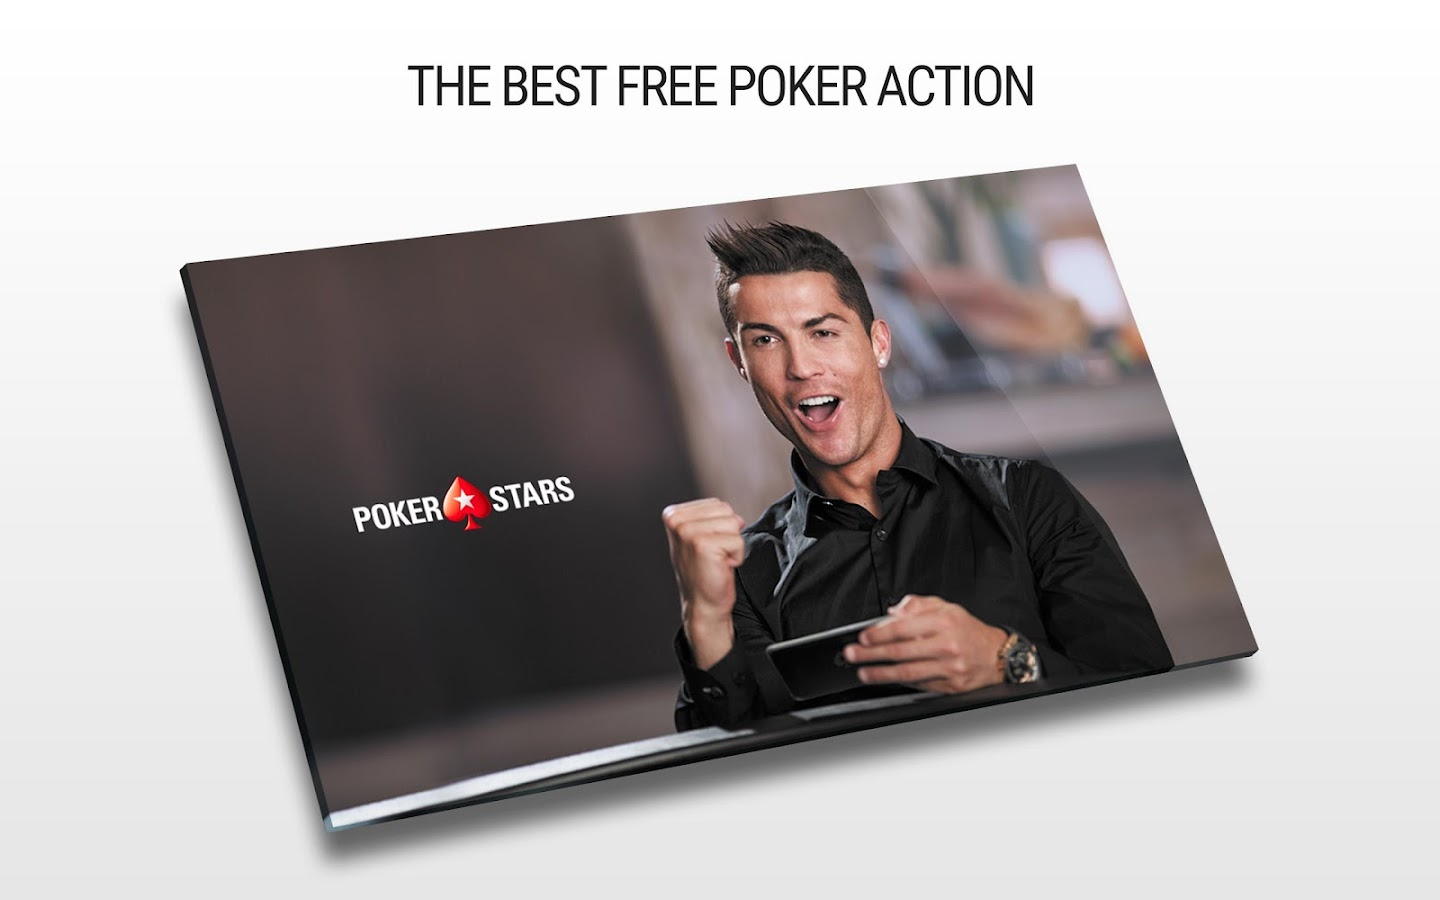 pokerstars app real money